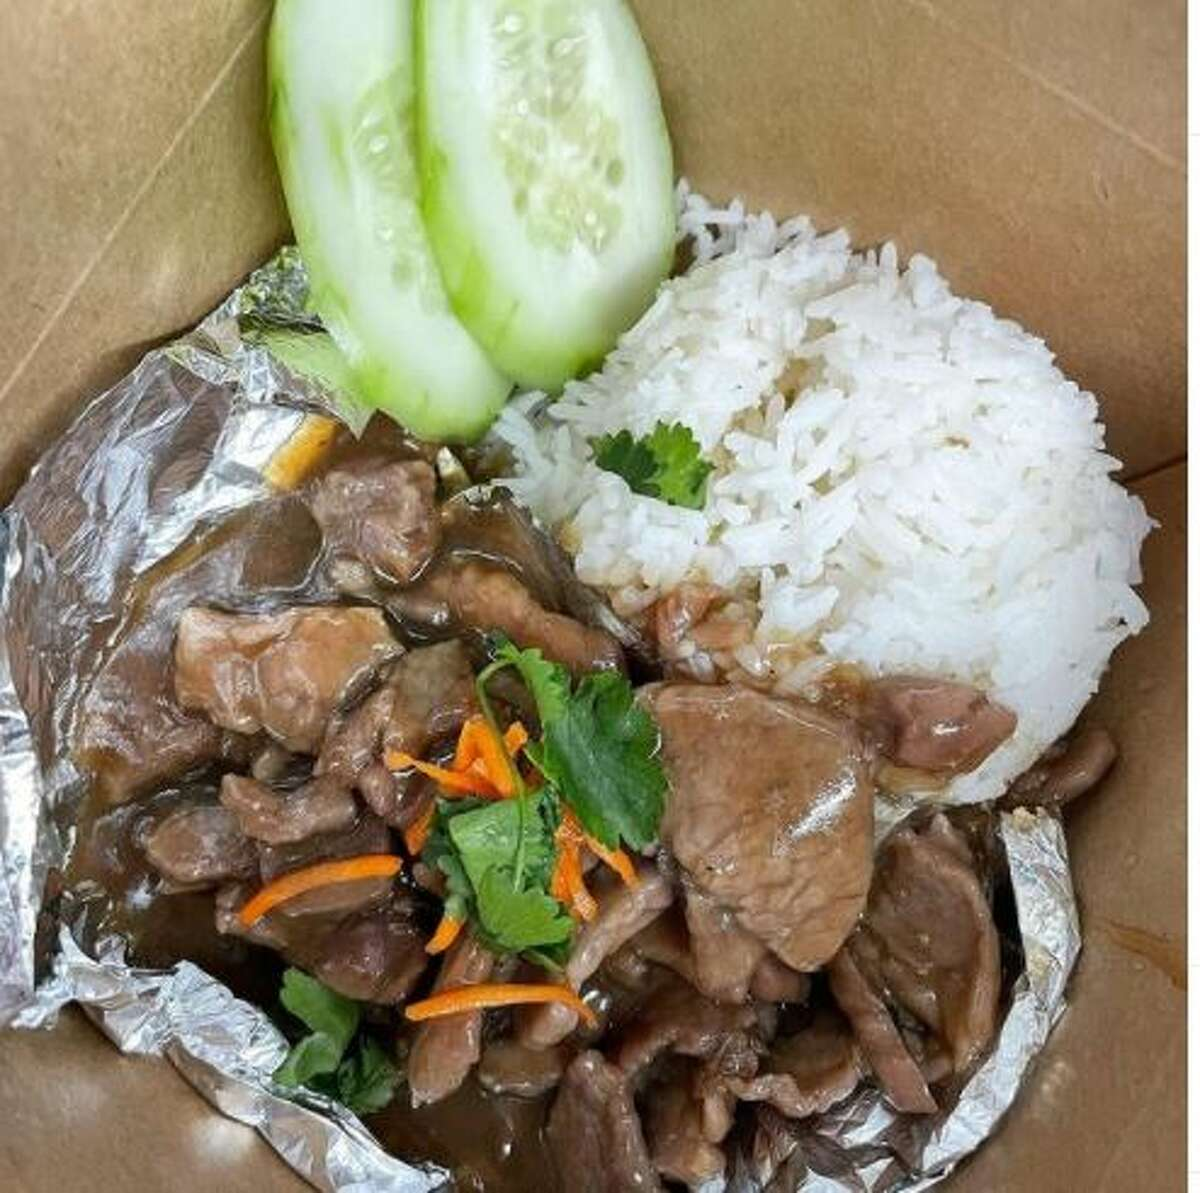 Customers can expect street Thai food, like fried rice, sweet pork (pictured), grilled pork, grilled beef, beef massaman curry and pad woonsen on the menu. Chaisittisinsuk said her Thai style omelet (Khao Khai Jiao) is something unique on her menu, as she says most restaurants don't have it. The omelet is topped with cilantro, served with jasmine rice, Thai Sriracha sauce and sliced cucumbers.